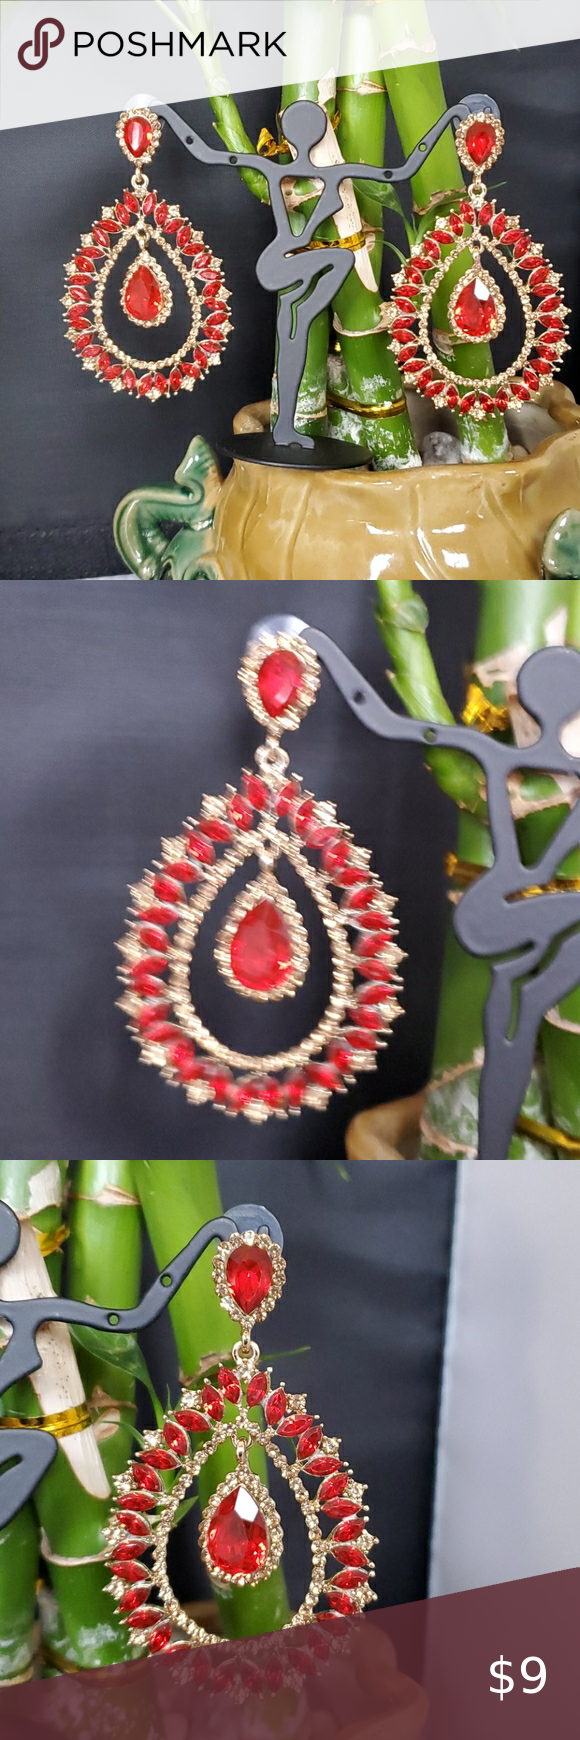 Fancy Earring Hot selling Indian model earrings   Gorgeous look with beautiful r... -  Fancy Earring Hot selling Indian model earrings   Gorgeous look with beautiful red color stone work - #antiquejewelry #beautiful #bridaljewelry #earring #earrings #fancy #gorgeous #Hot #indian #indianjewelry #Model #selling